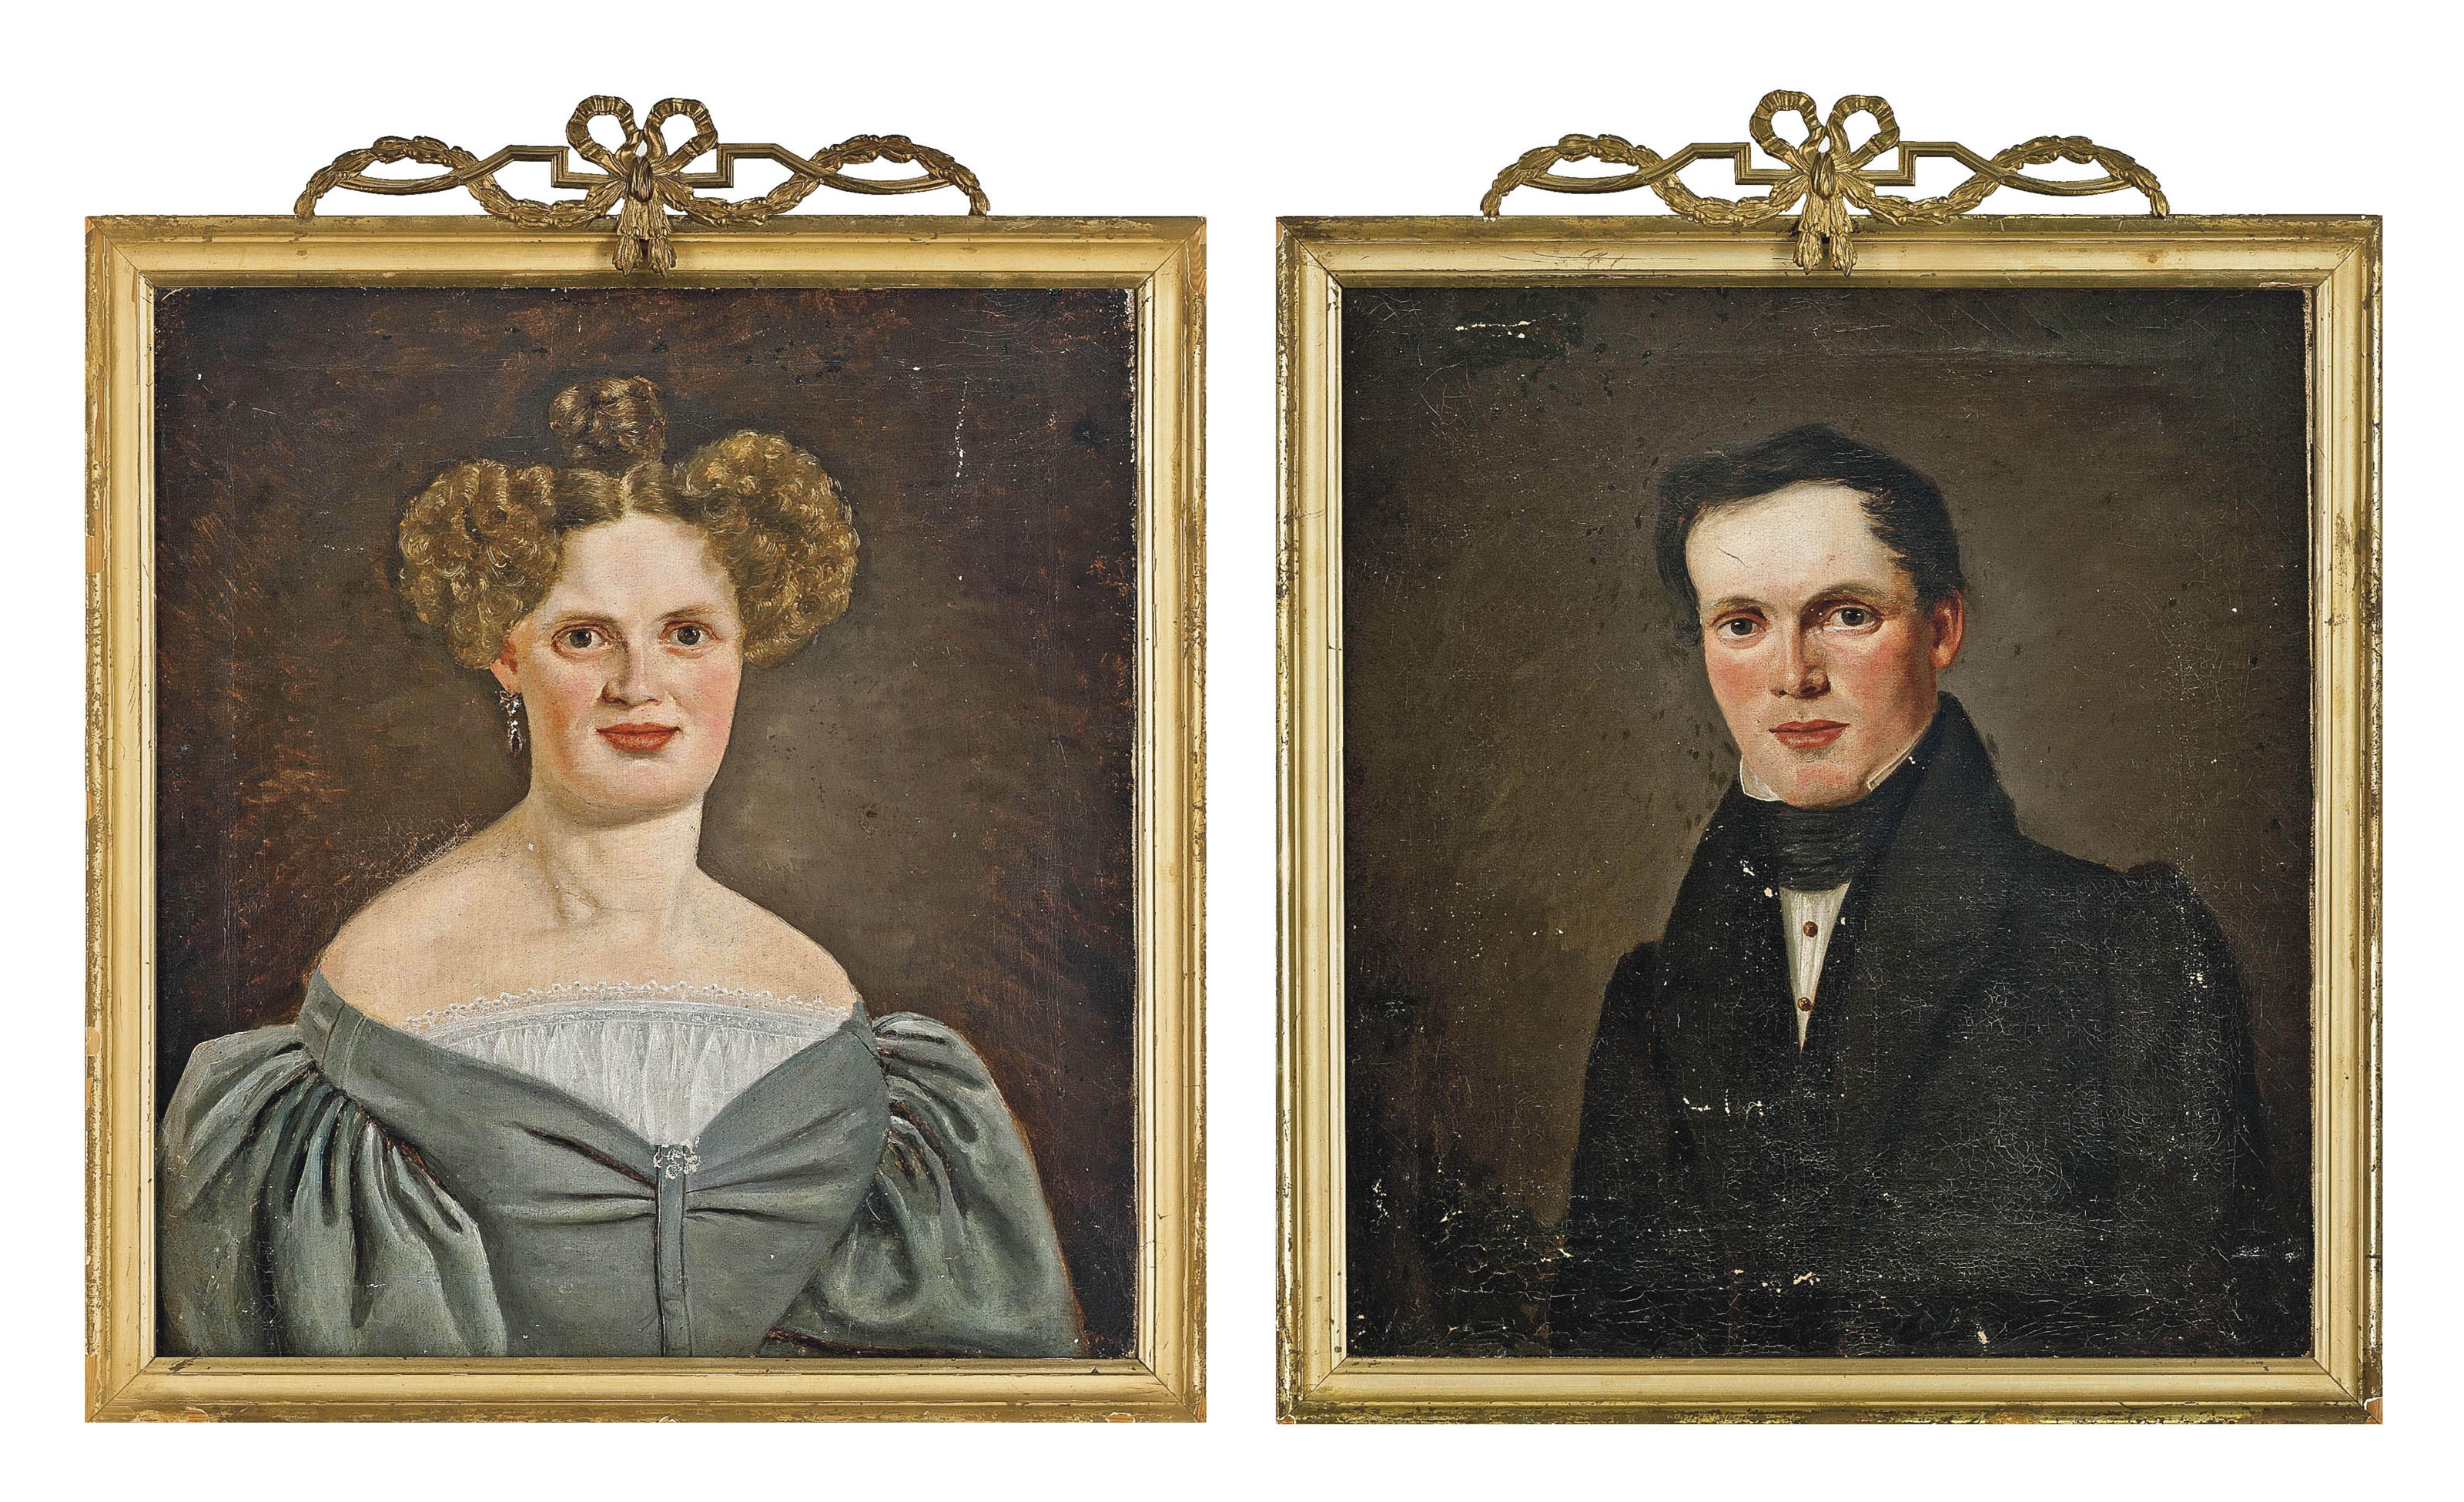 Portrait of a lady in a grey dress; and Portrait of a gentleman in a black coat and cravat, both bust-length